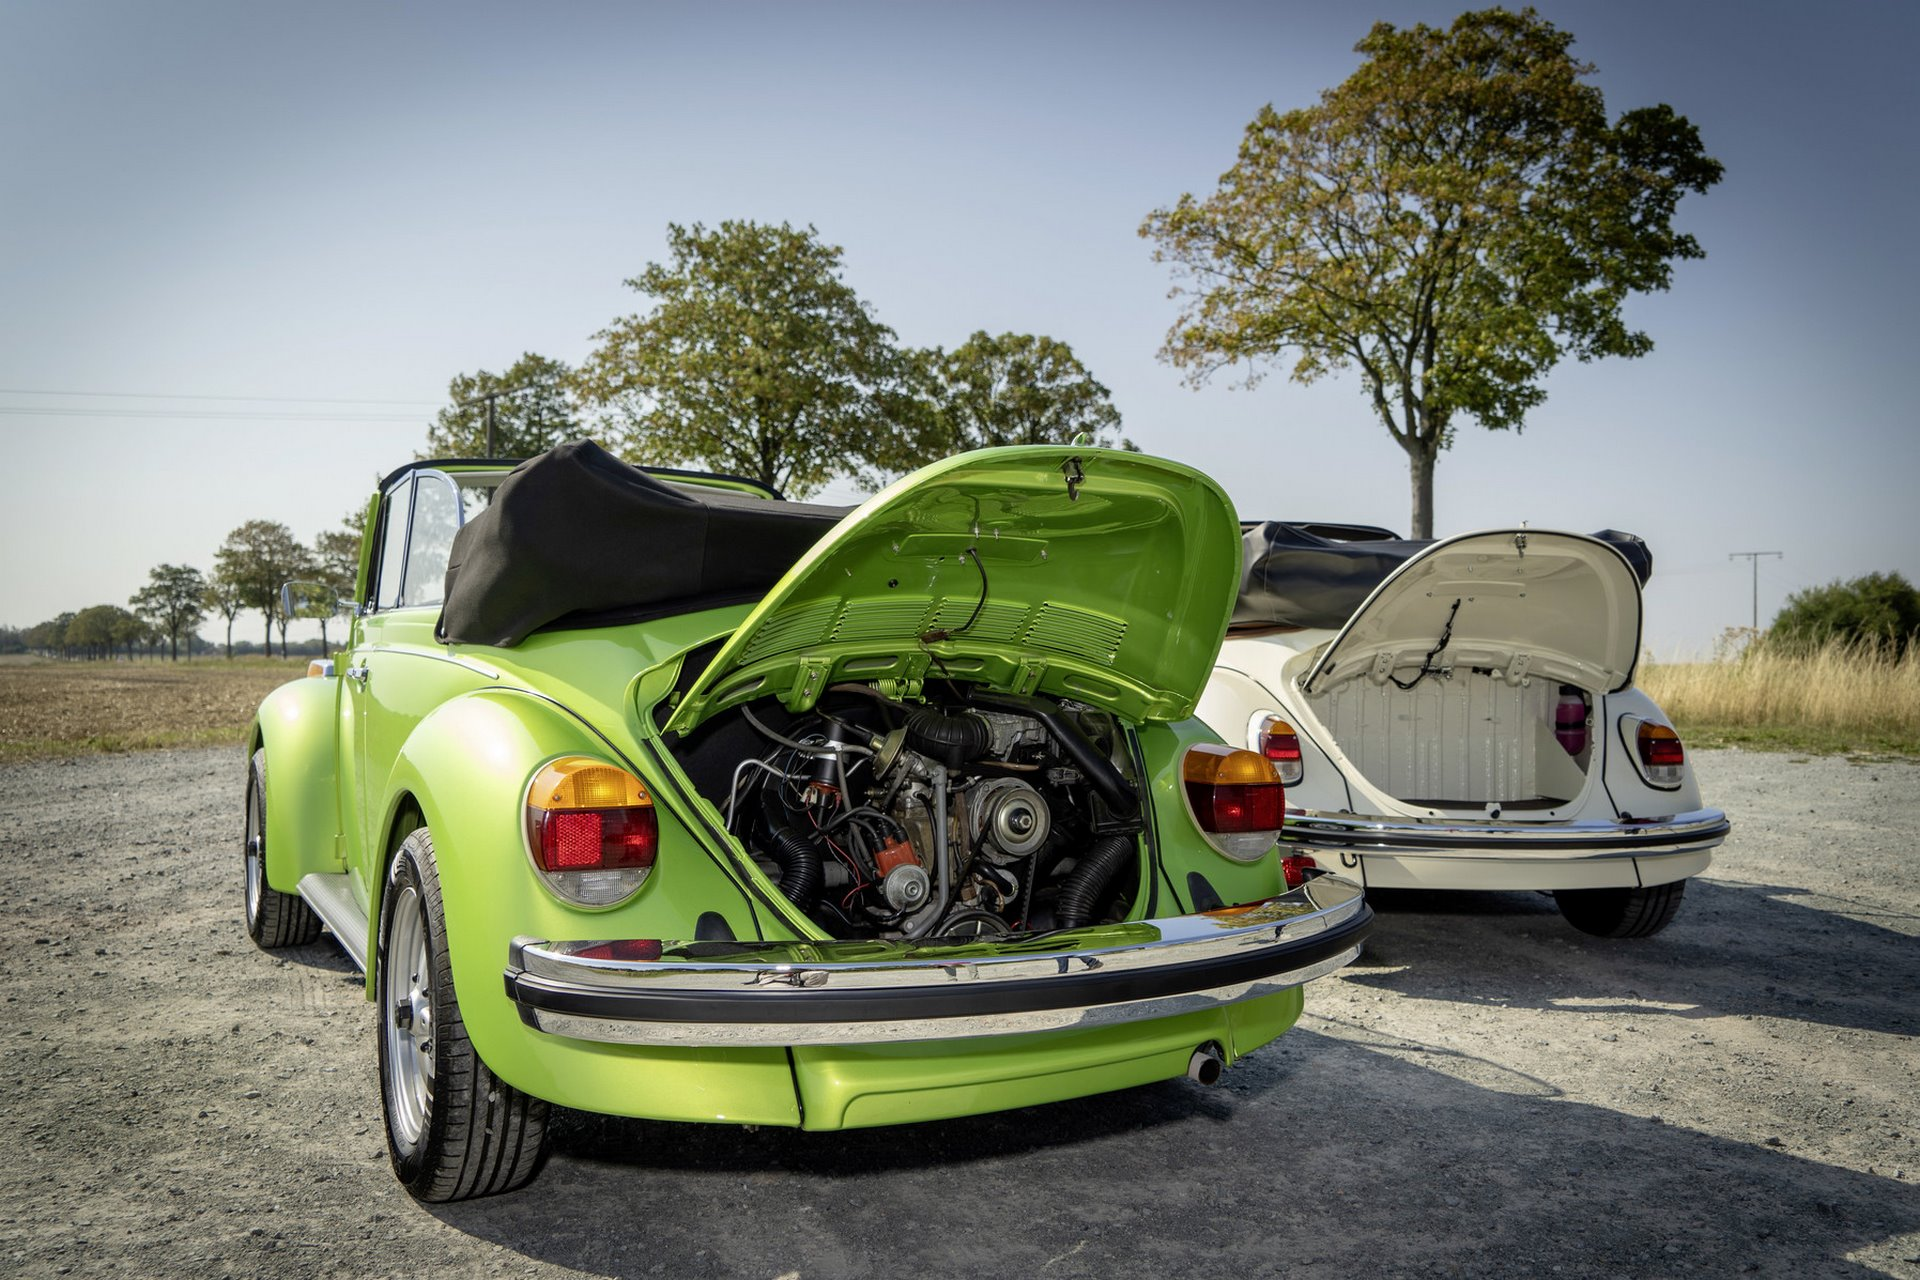 The e-Beetle is providing an additional trunk, where the classic Beetle has its boxer engine